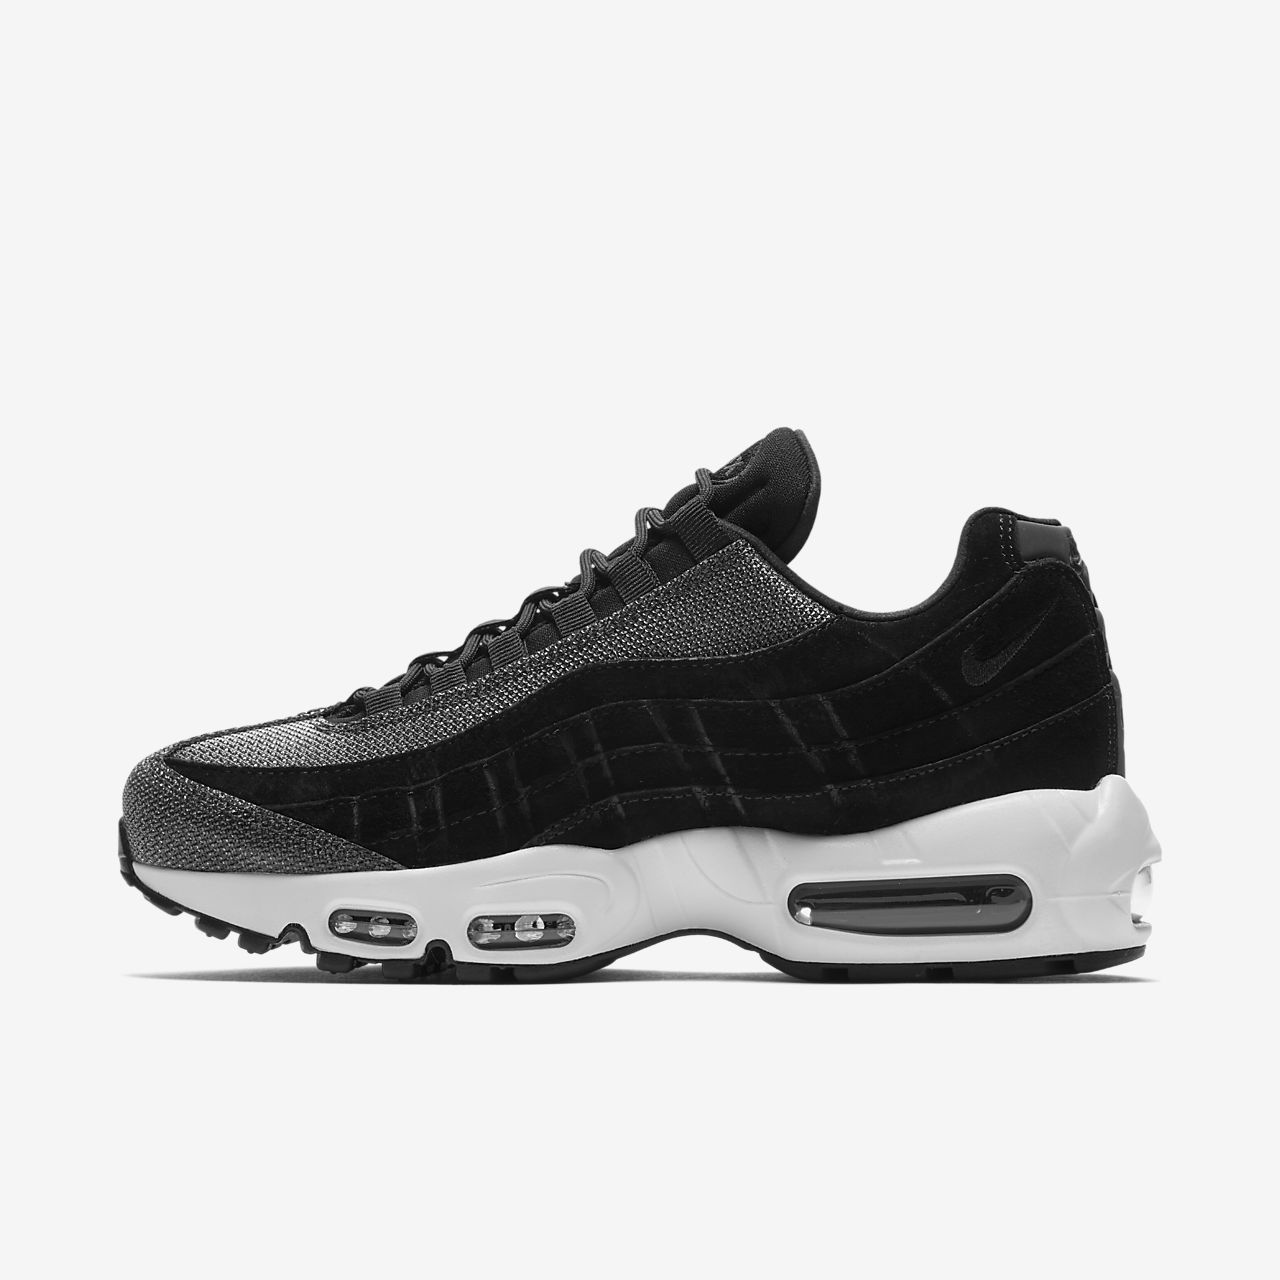 nike air max 95 premium women 39 s shoe ma. Black Bedroom Furniture Sets. Home Design Ideas